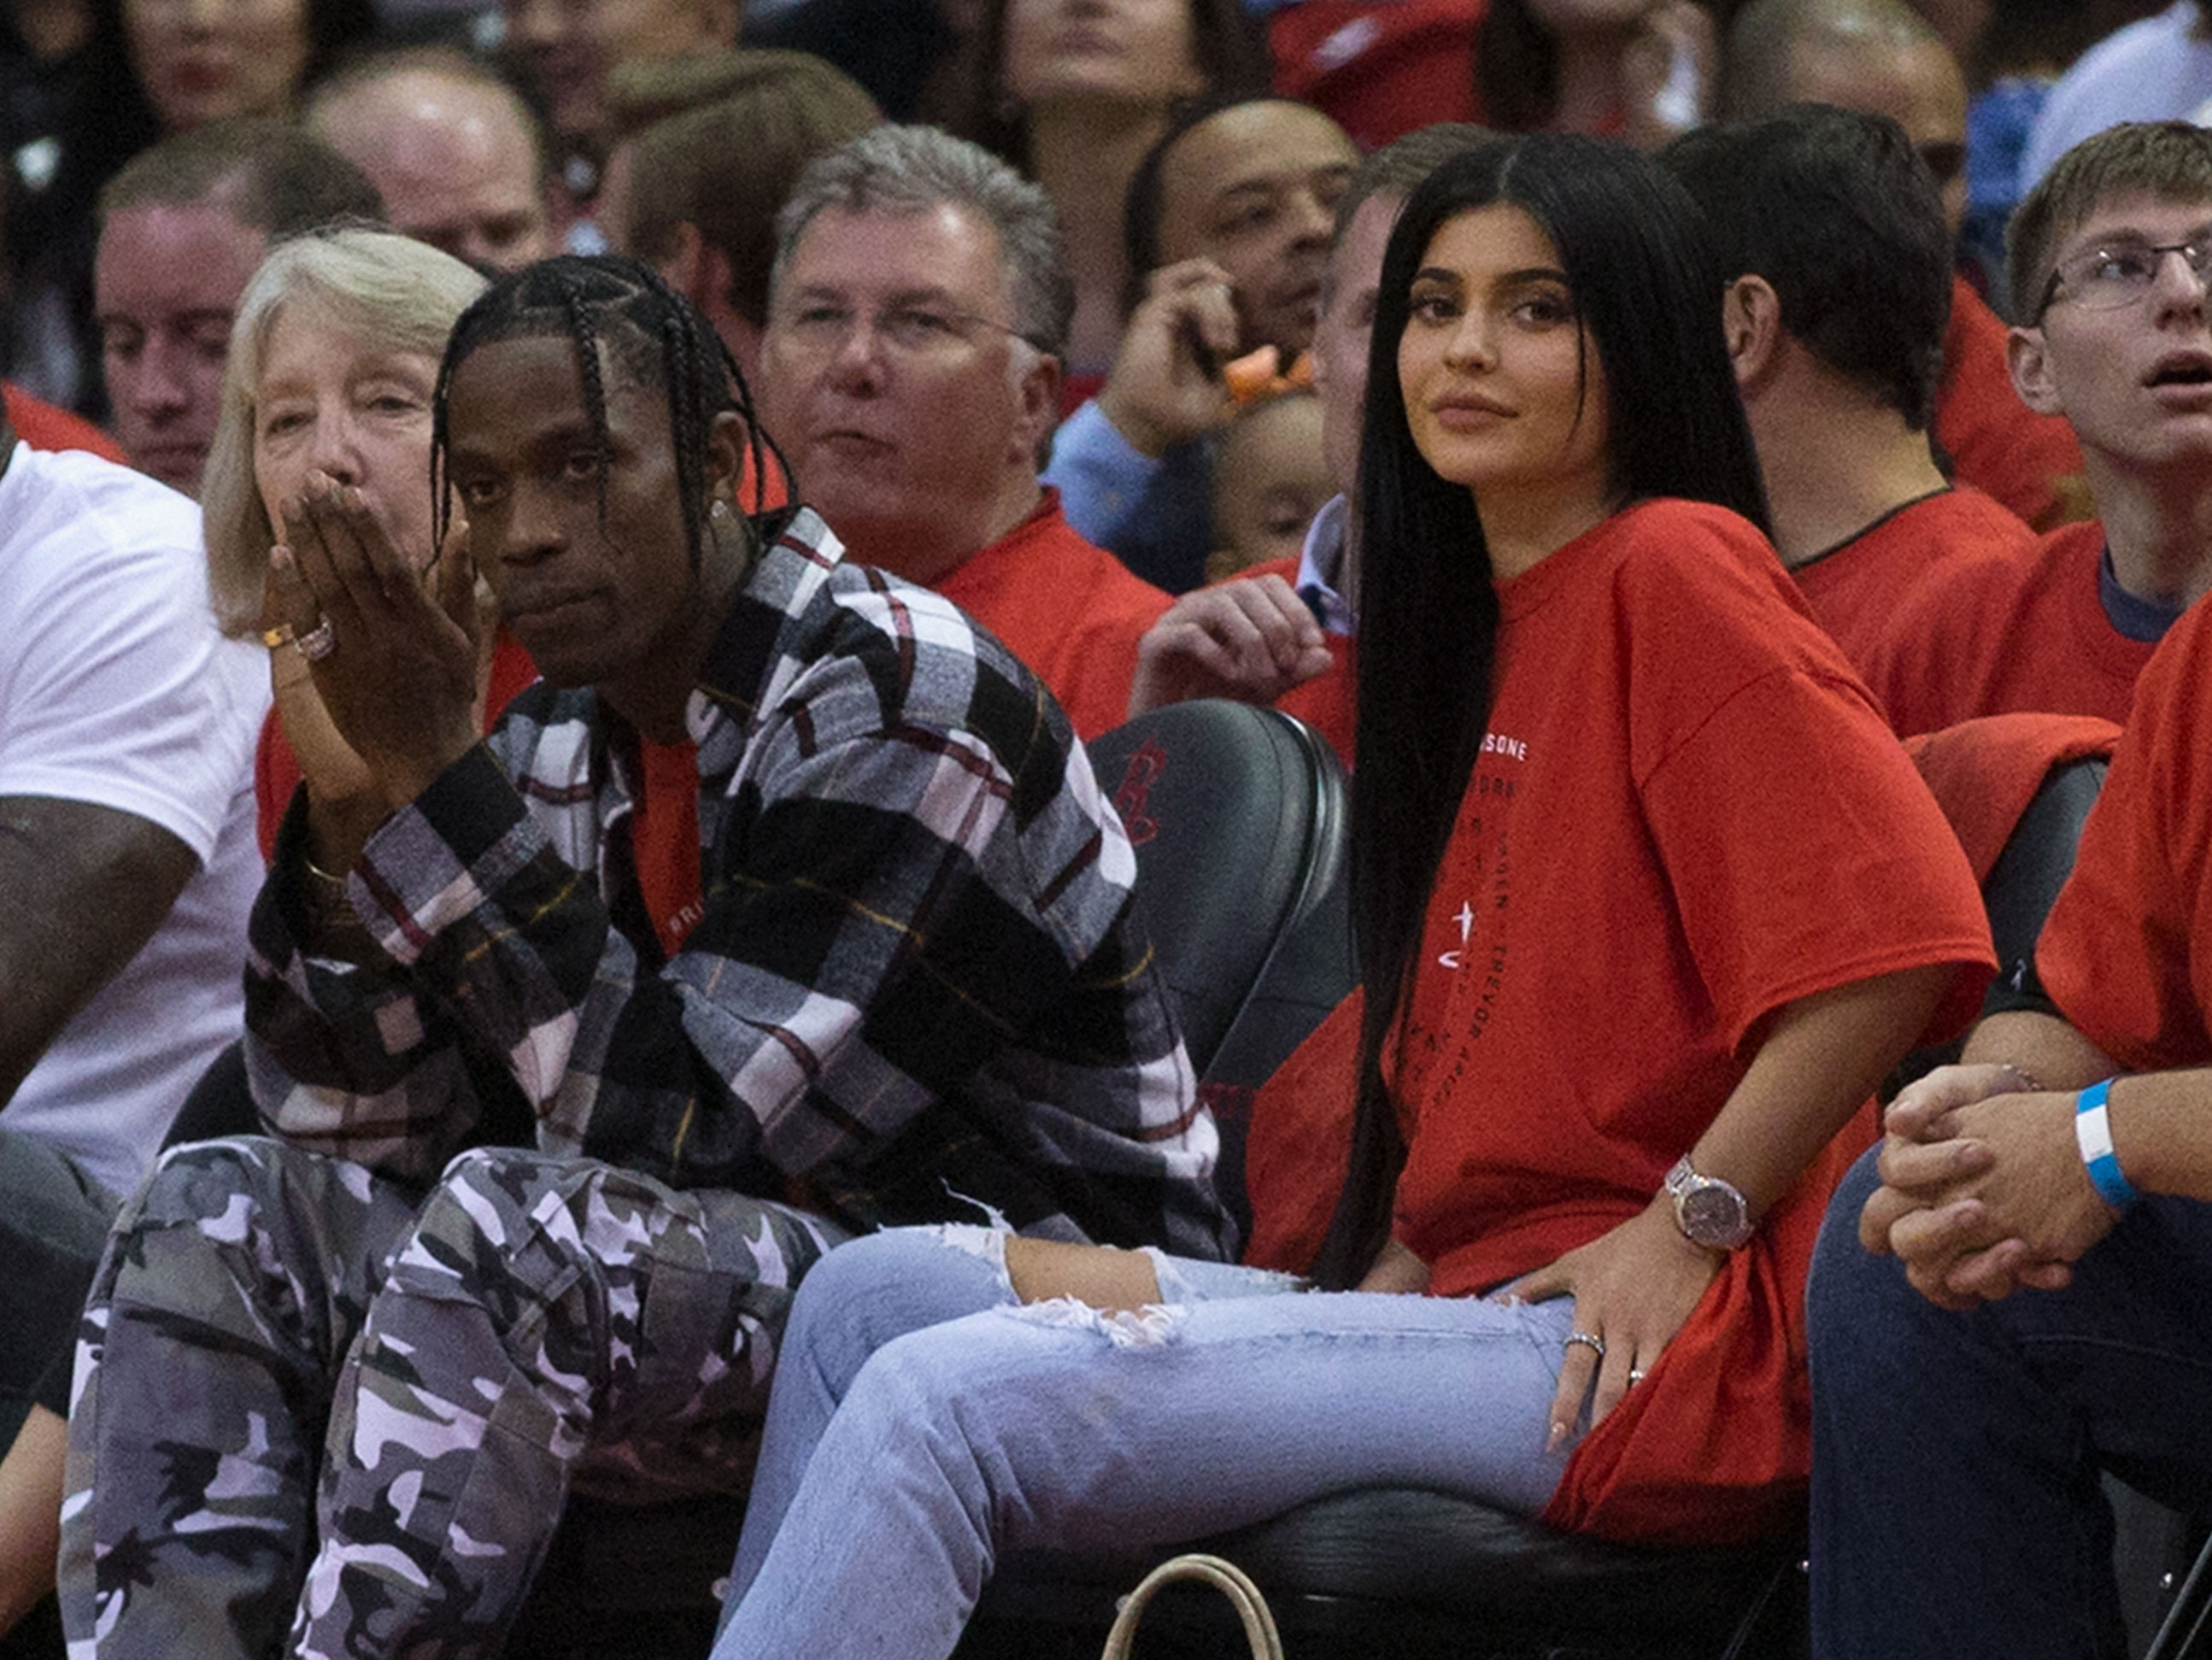 Kylie Jenner and Rihanna's Ex-Boyfriend Travis Scott Get Matching Tattoos!